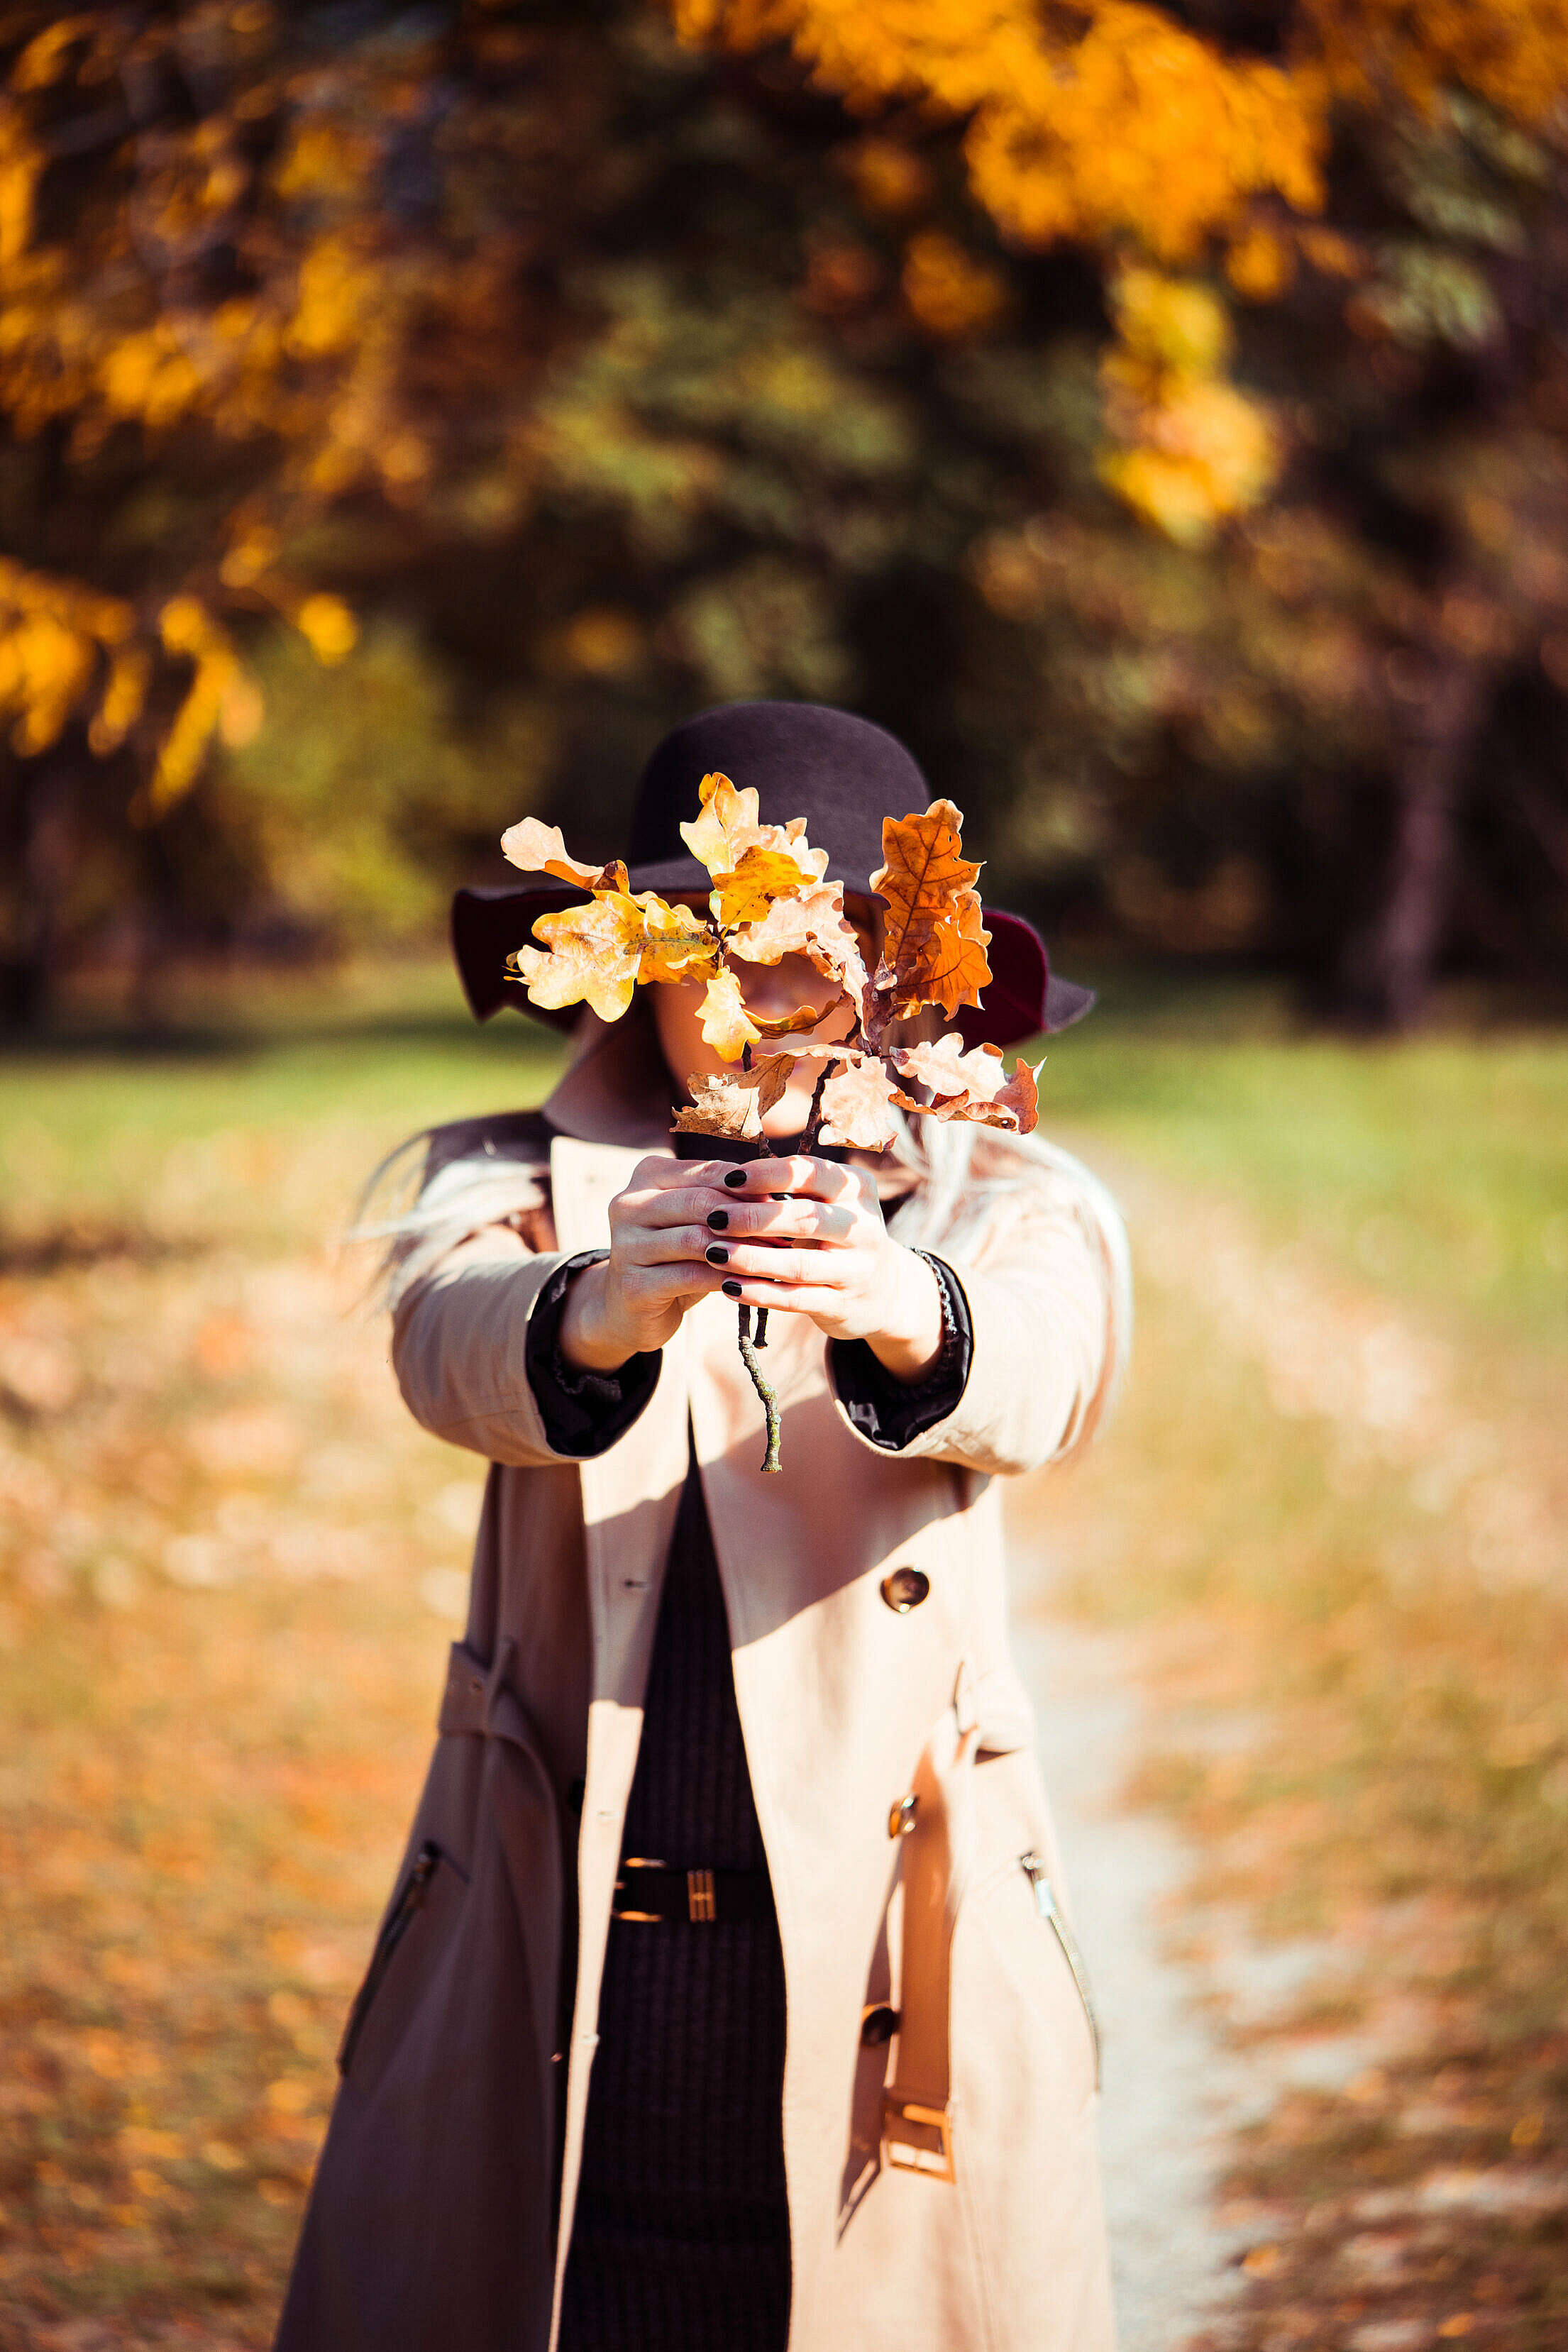 Woman Covering Her Face with Autumn Leaves Free Stock Photo